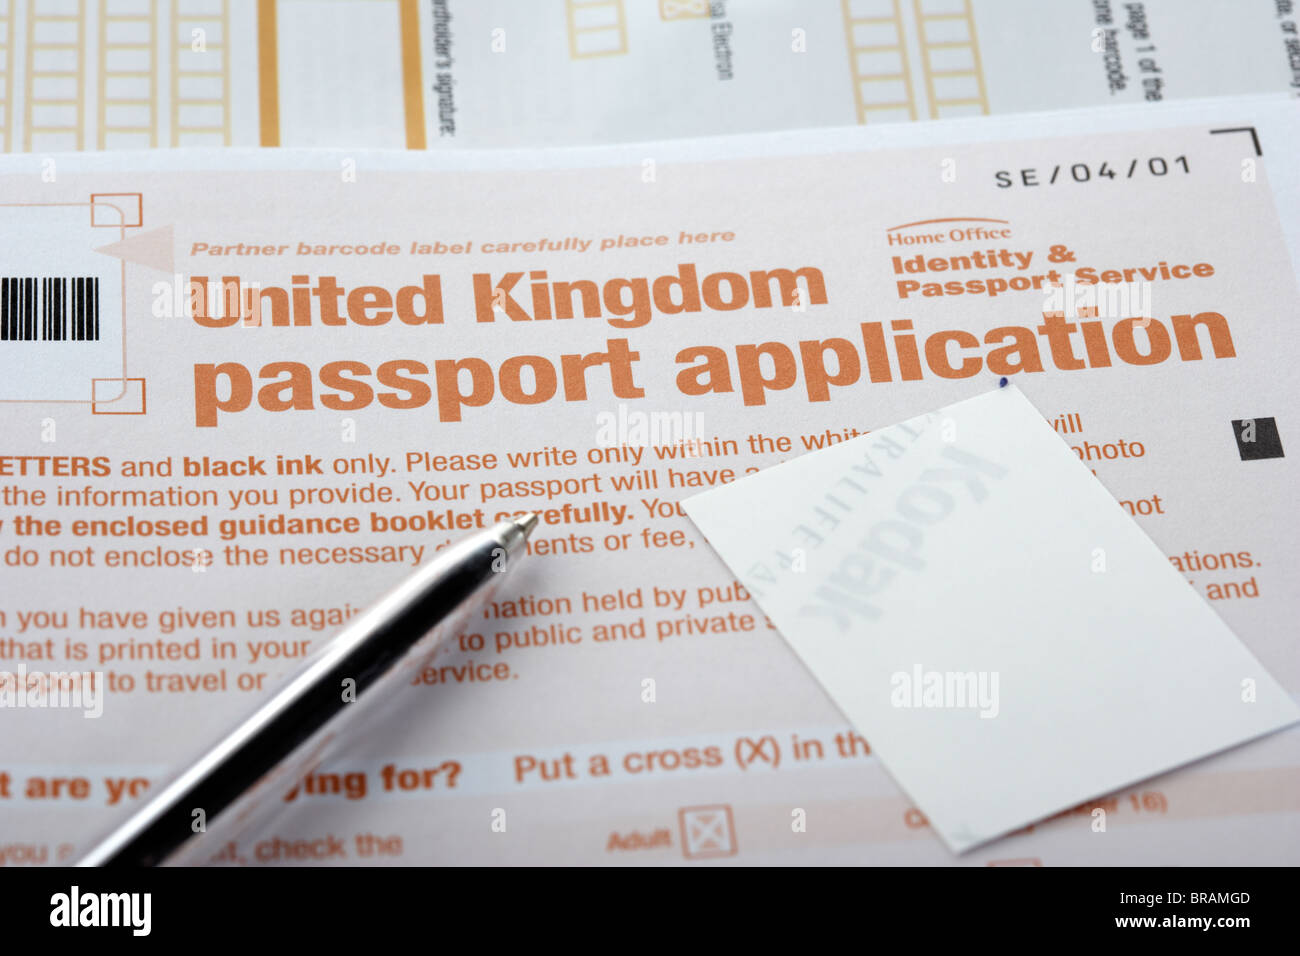 united kingdom home office identity and passport service passport ...